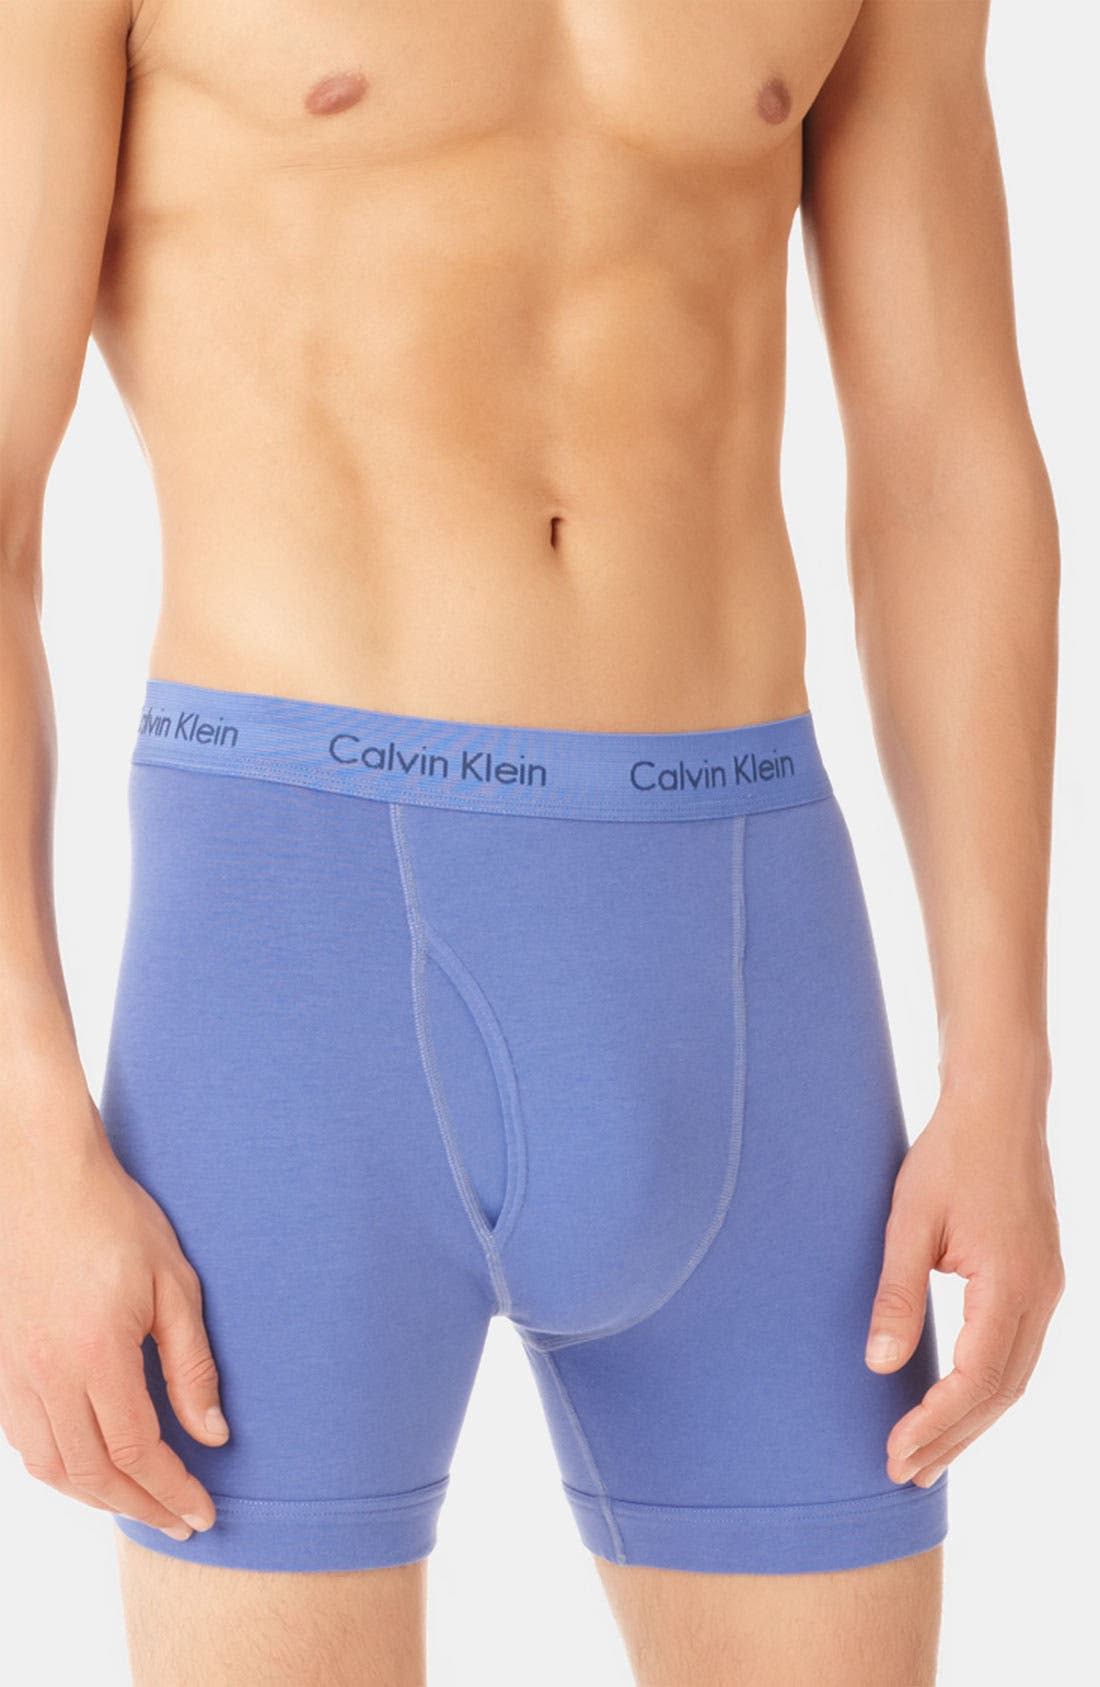 Alternate Image 2  - Calvin Klein 'U2666' Stretch Cotton Boxer Briefs (Assorted 2-Pack)